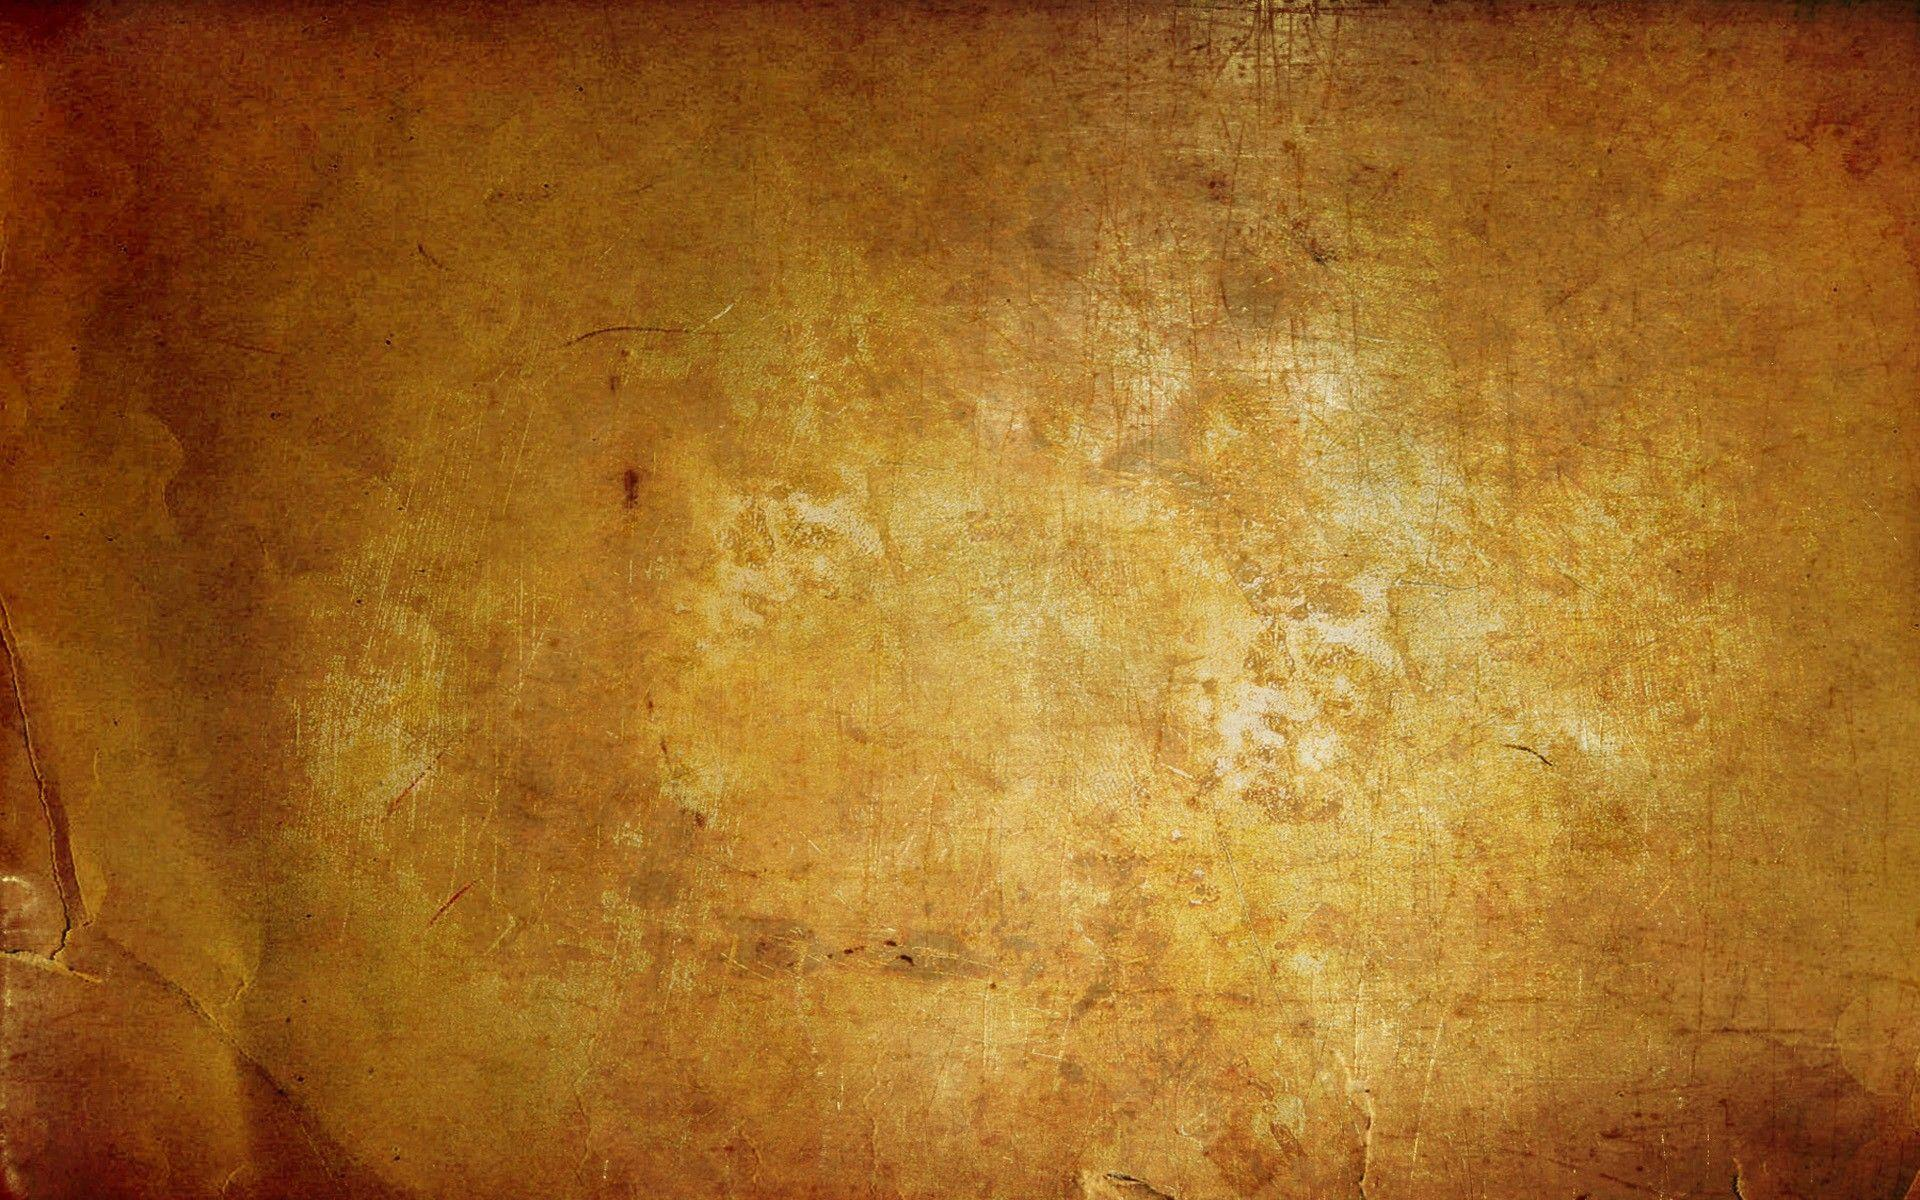 hd grunge wallpaper texture - photo #12